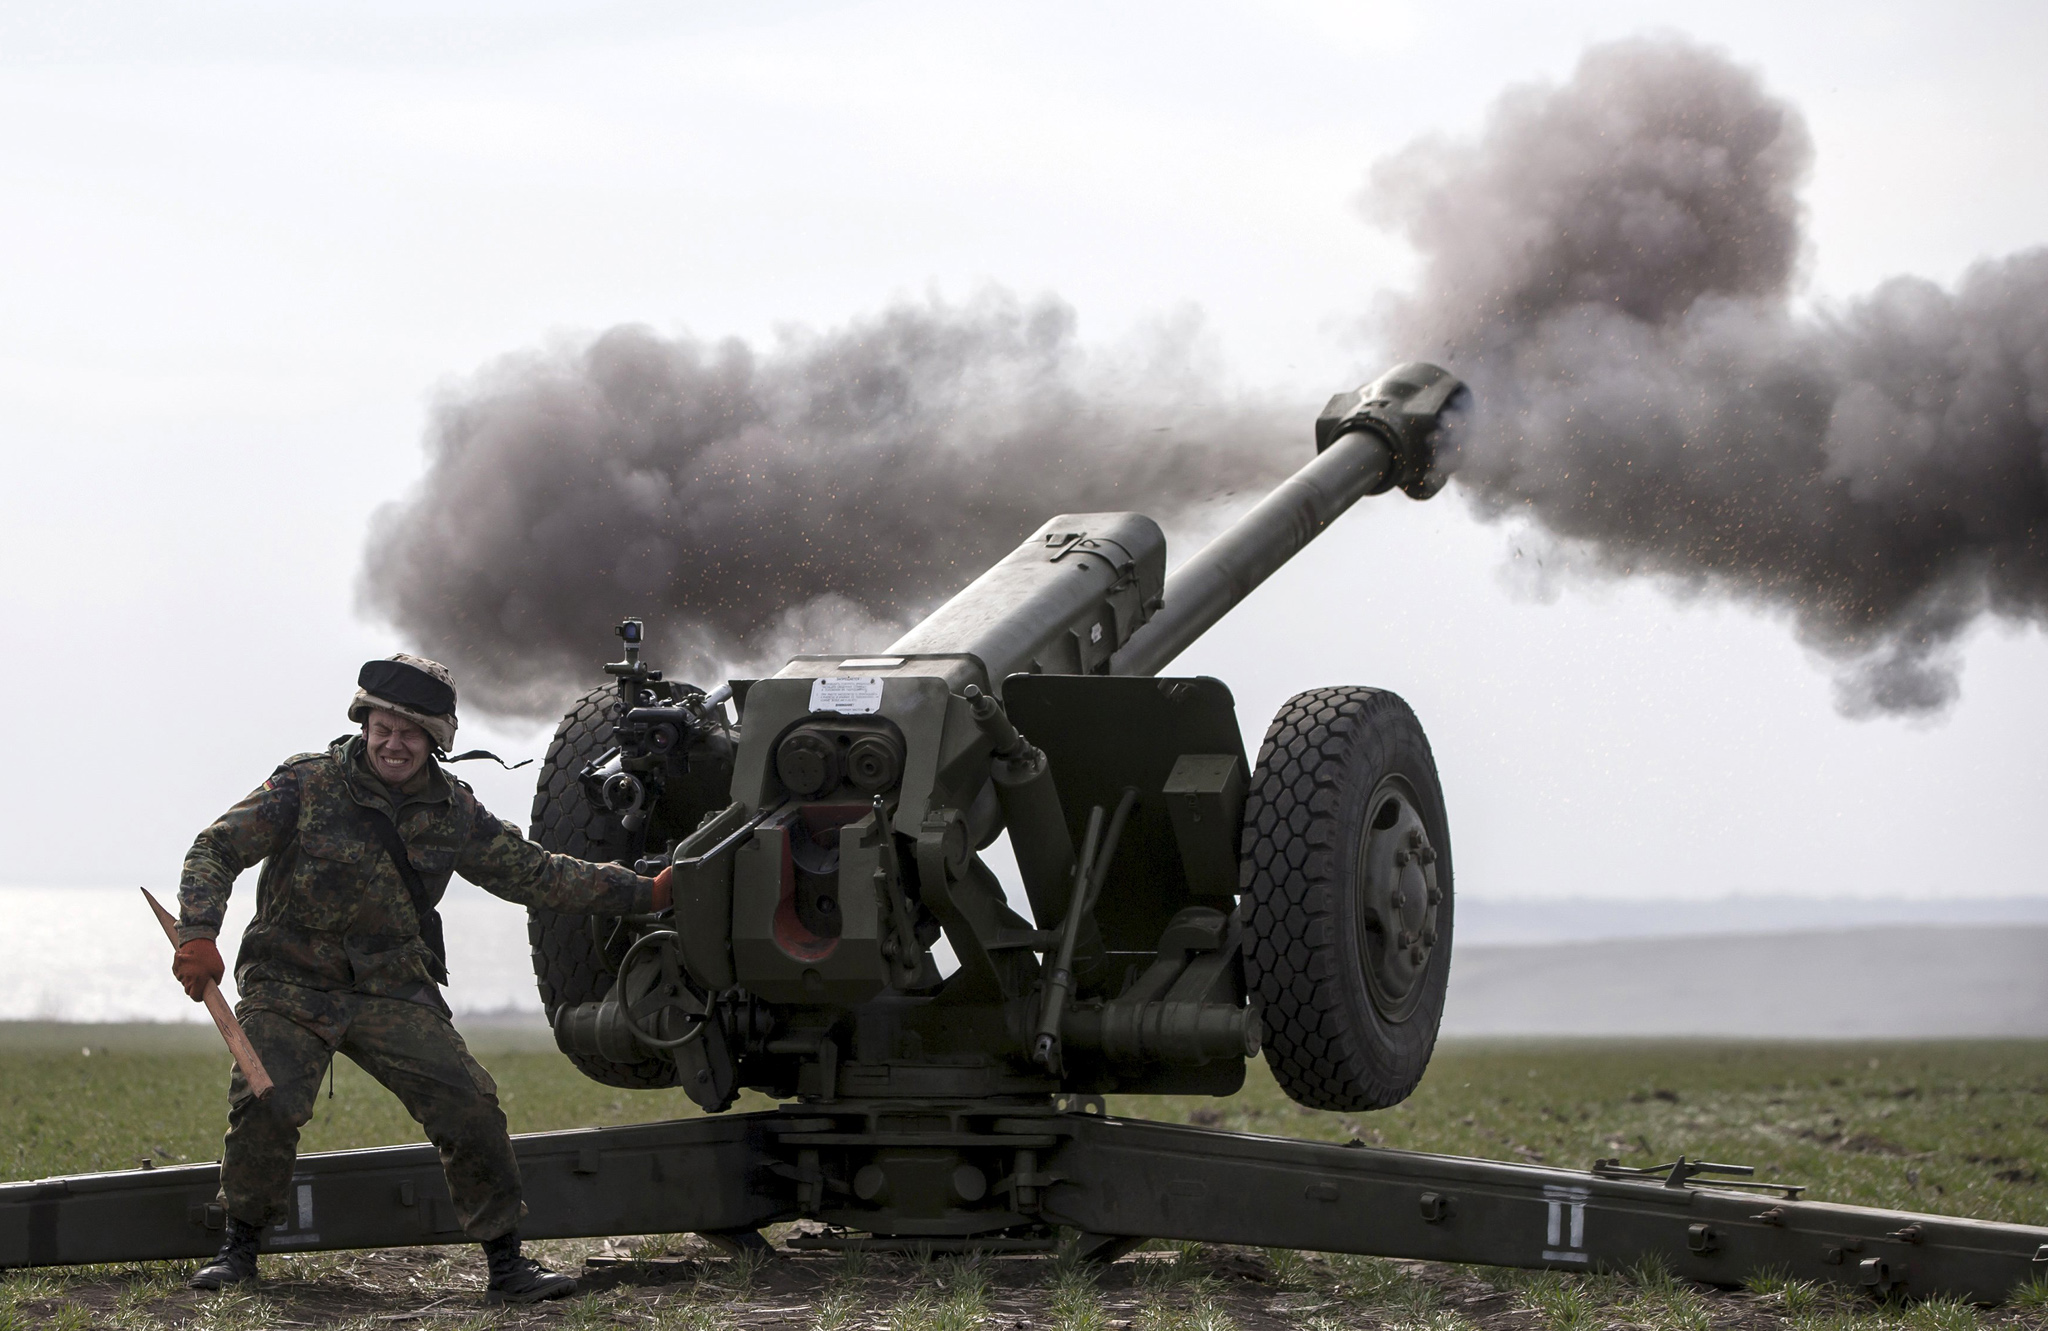 Ukraine's voluntary militia, called the Azov Battalion, undergoes artillery training.